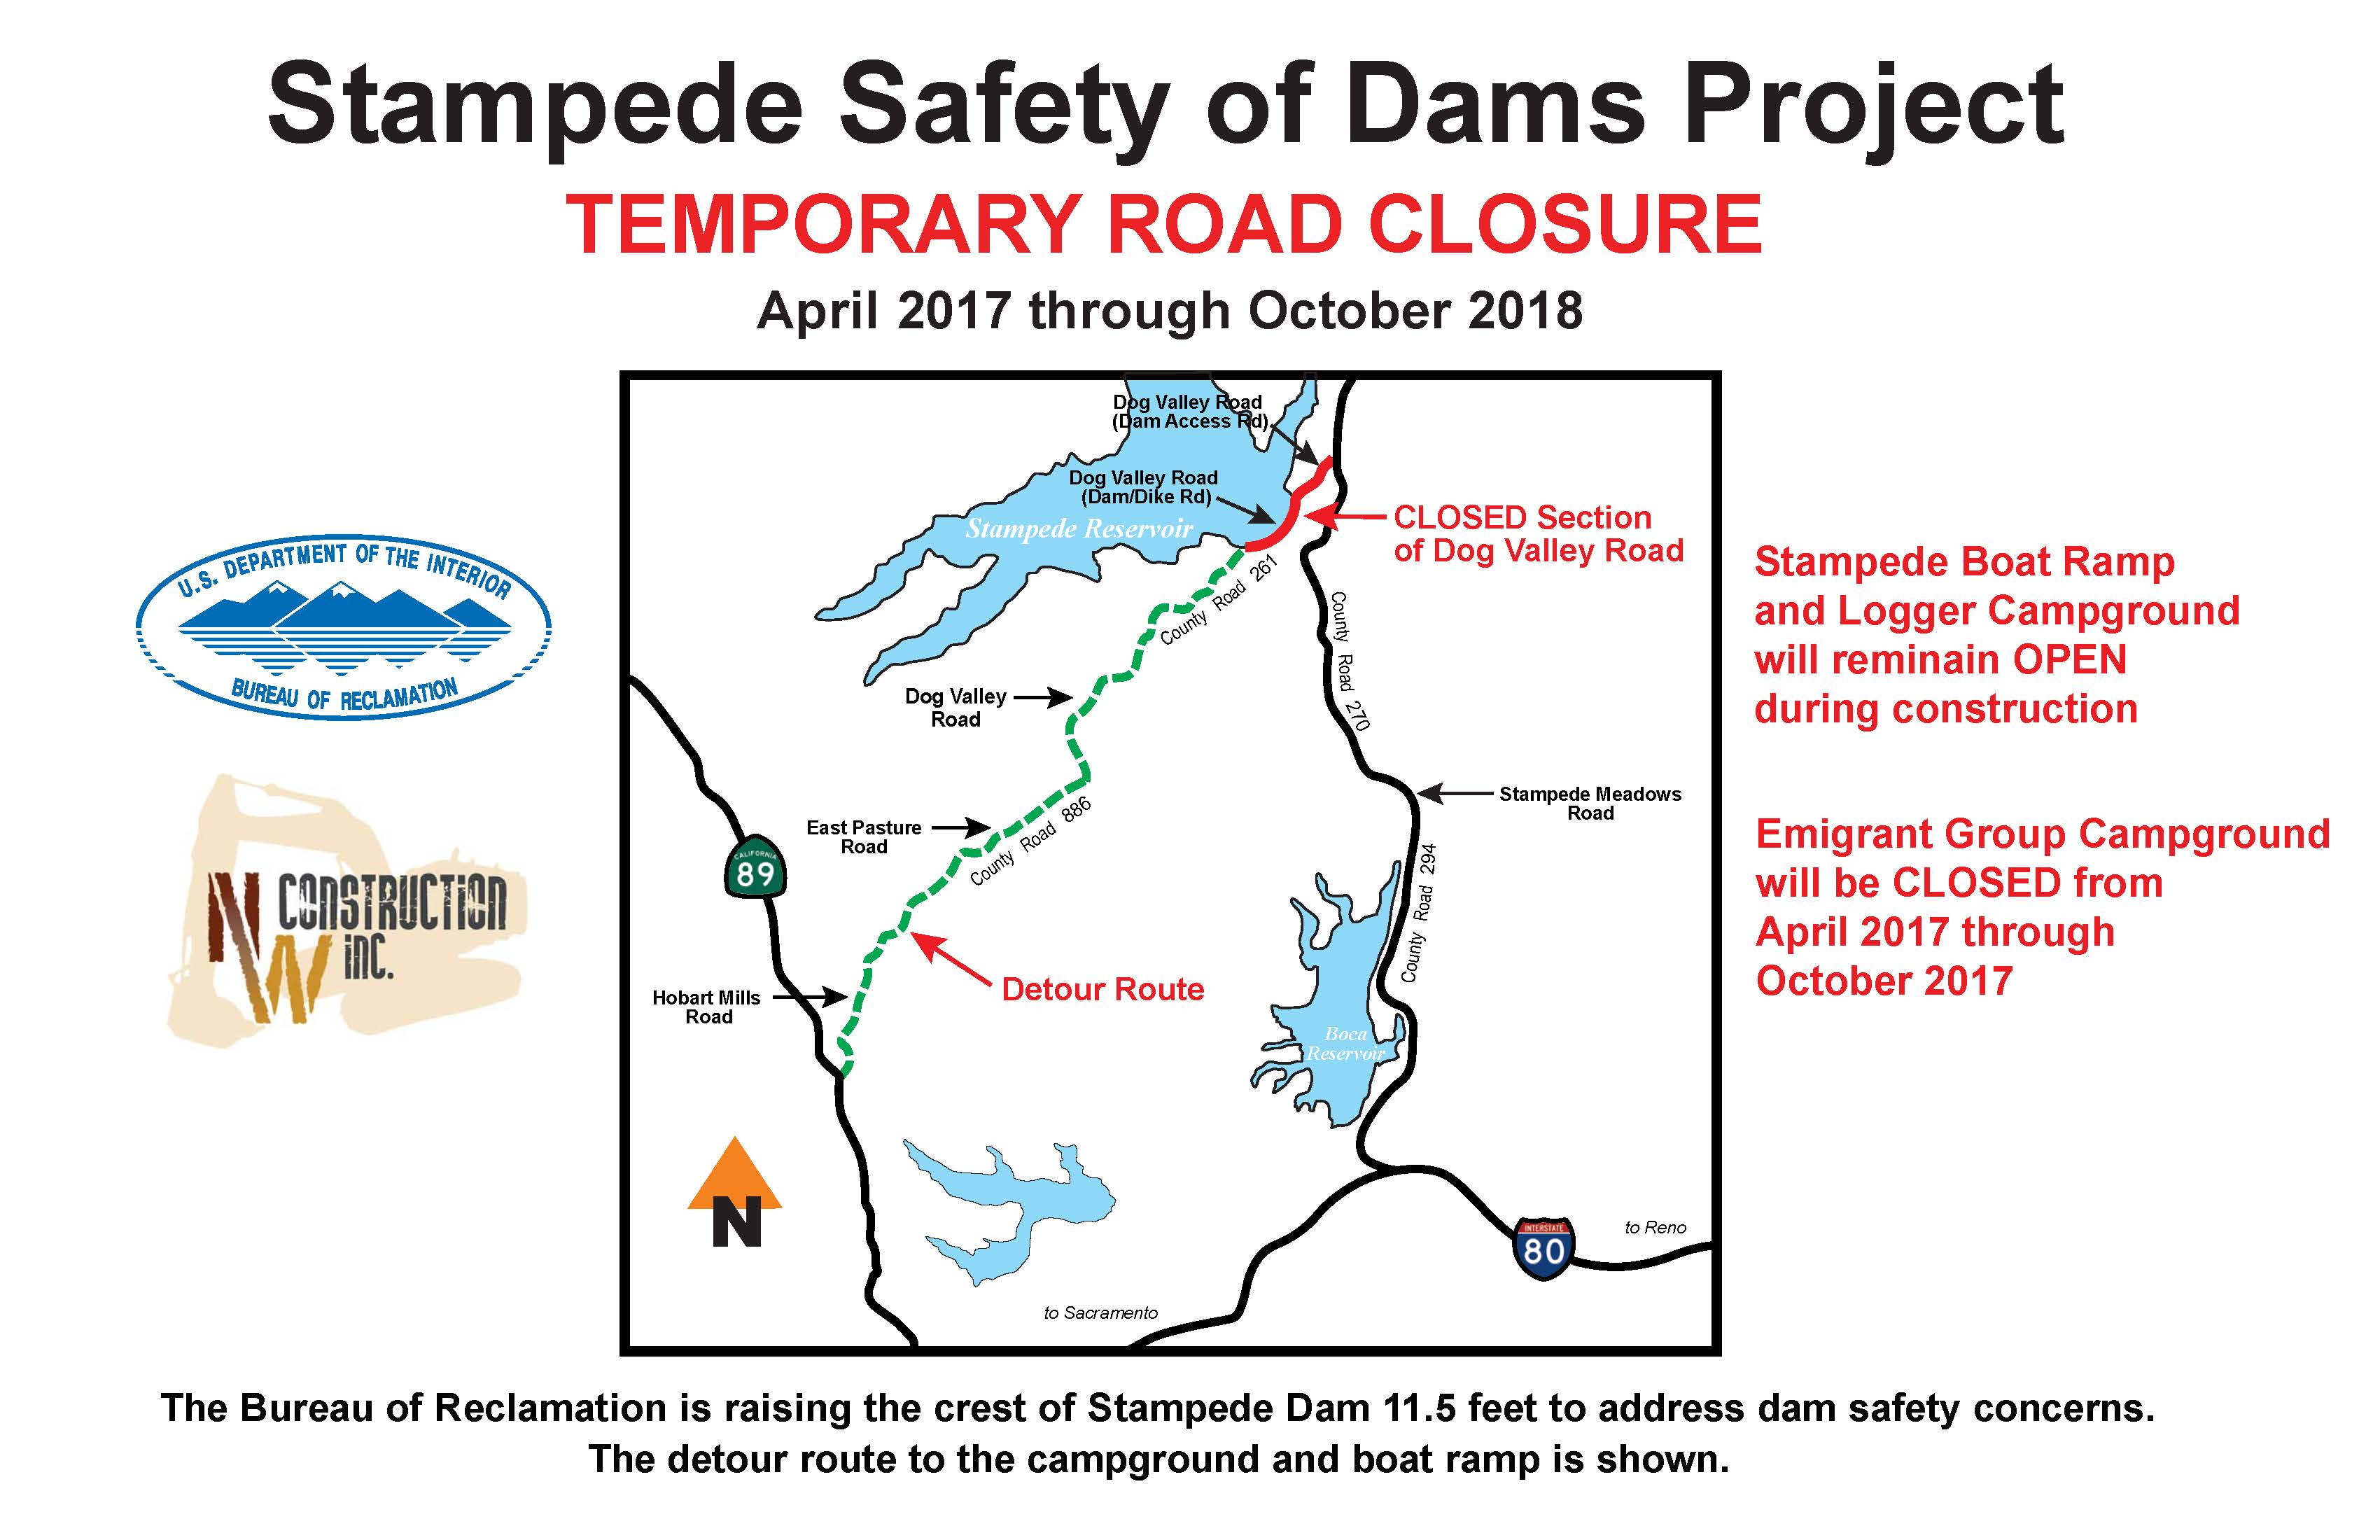 Road work creates delays to recreation sites on Stampede Reservoir